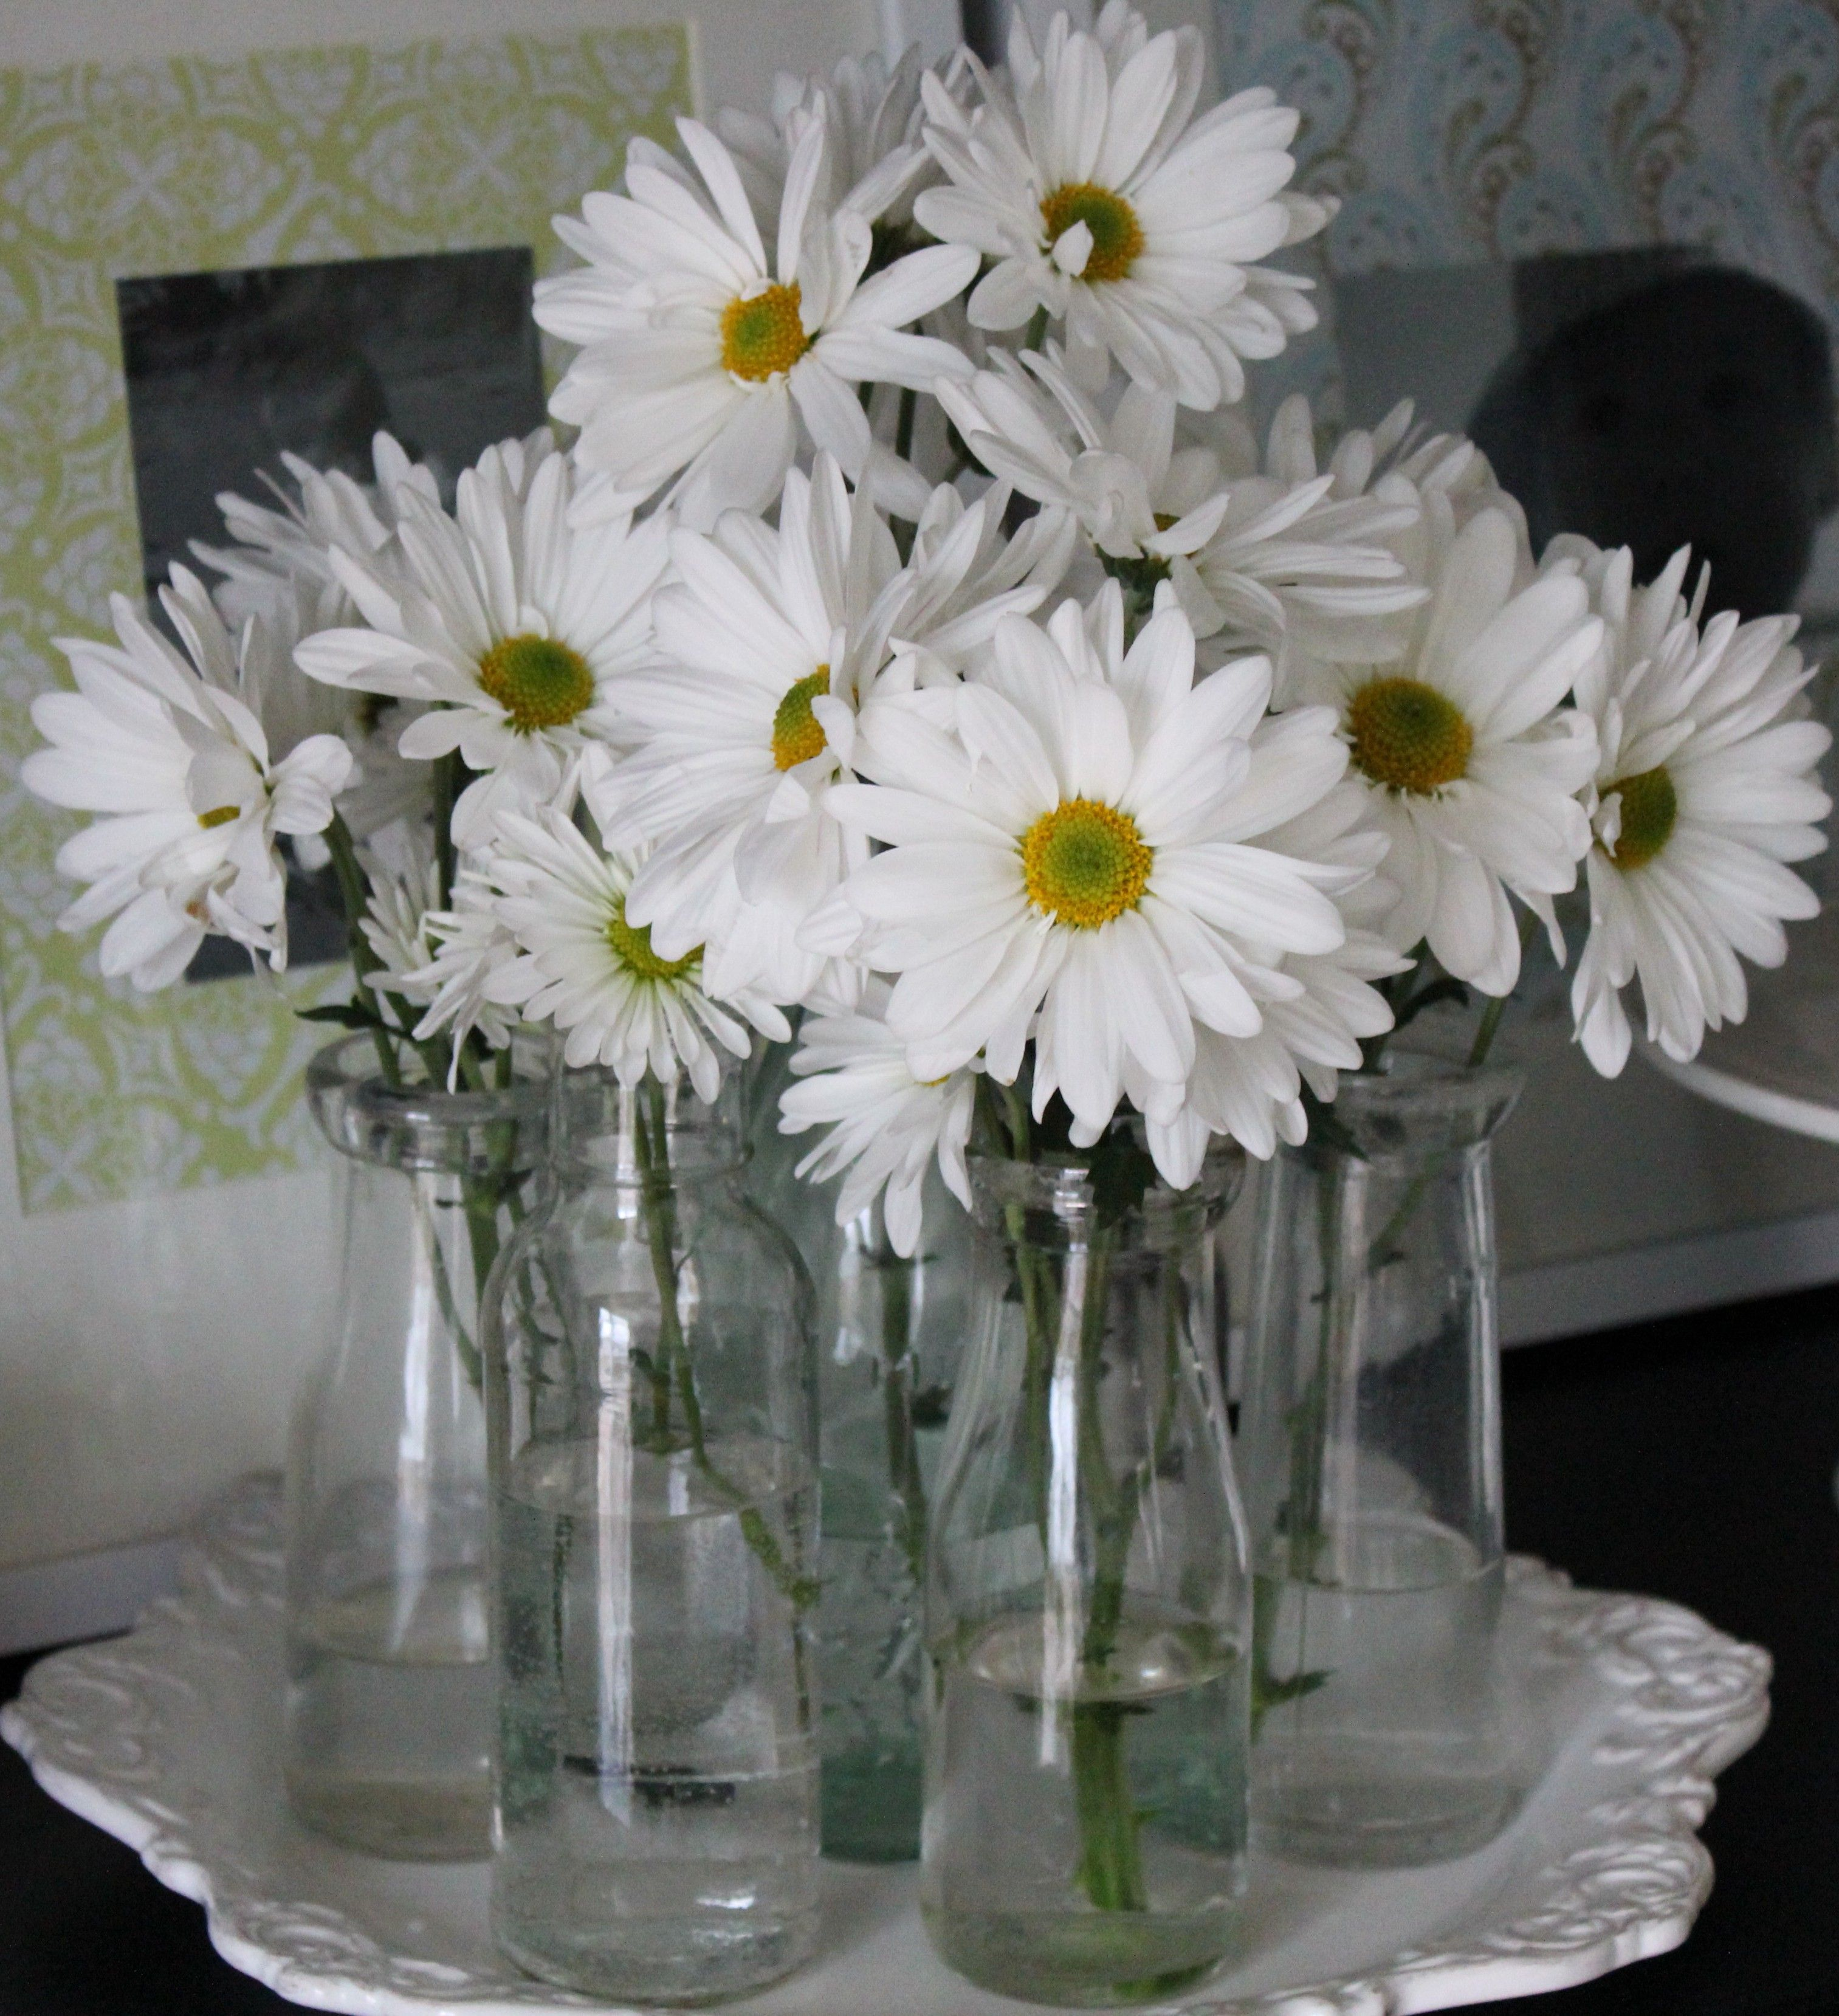 When I Have A Home Of My Own, I Will Have Fresh Daisies Everywhere All